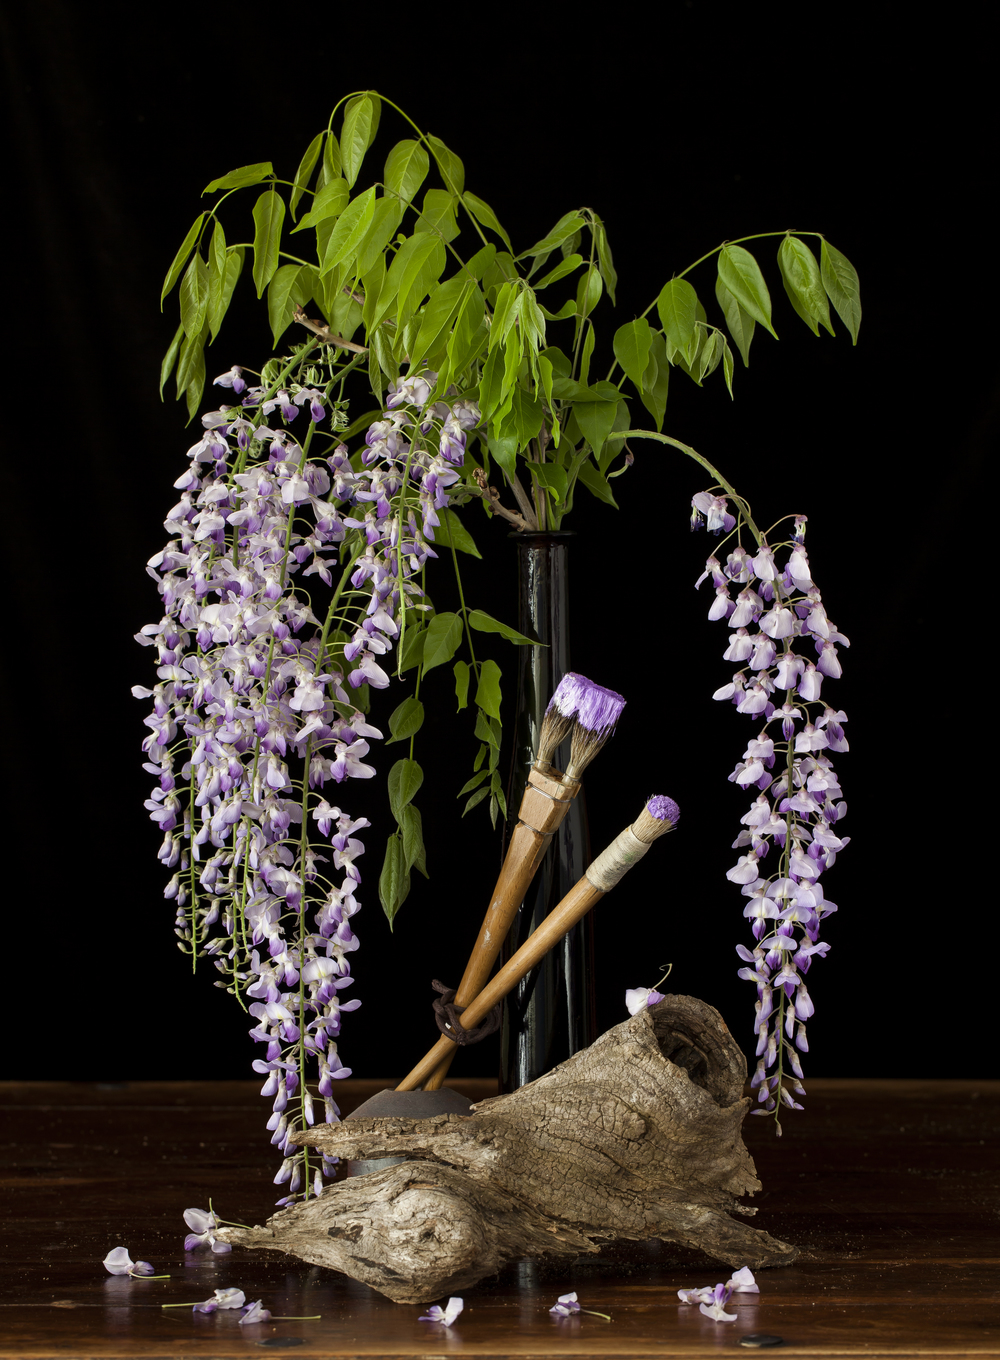 Wisteria in Bloom Still Life 2015